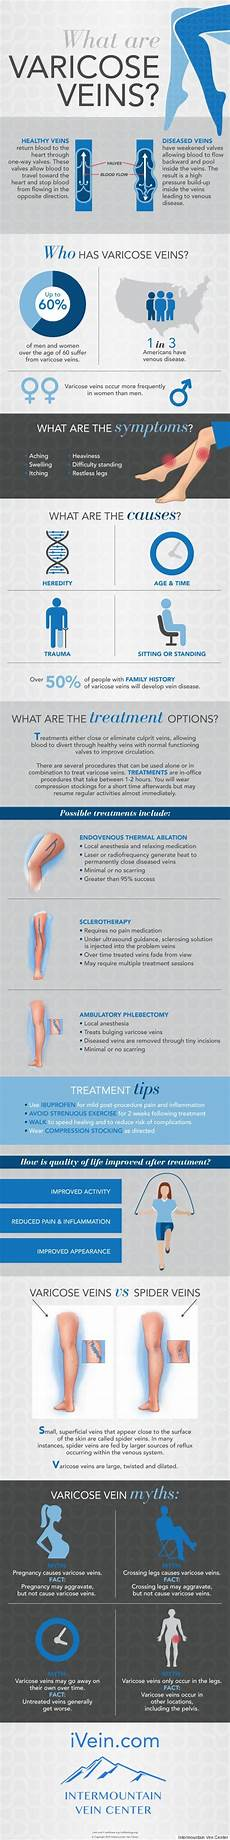 Varicose Vein Size Chart All Of Your Varicose Vein Questions Answered In One